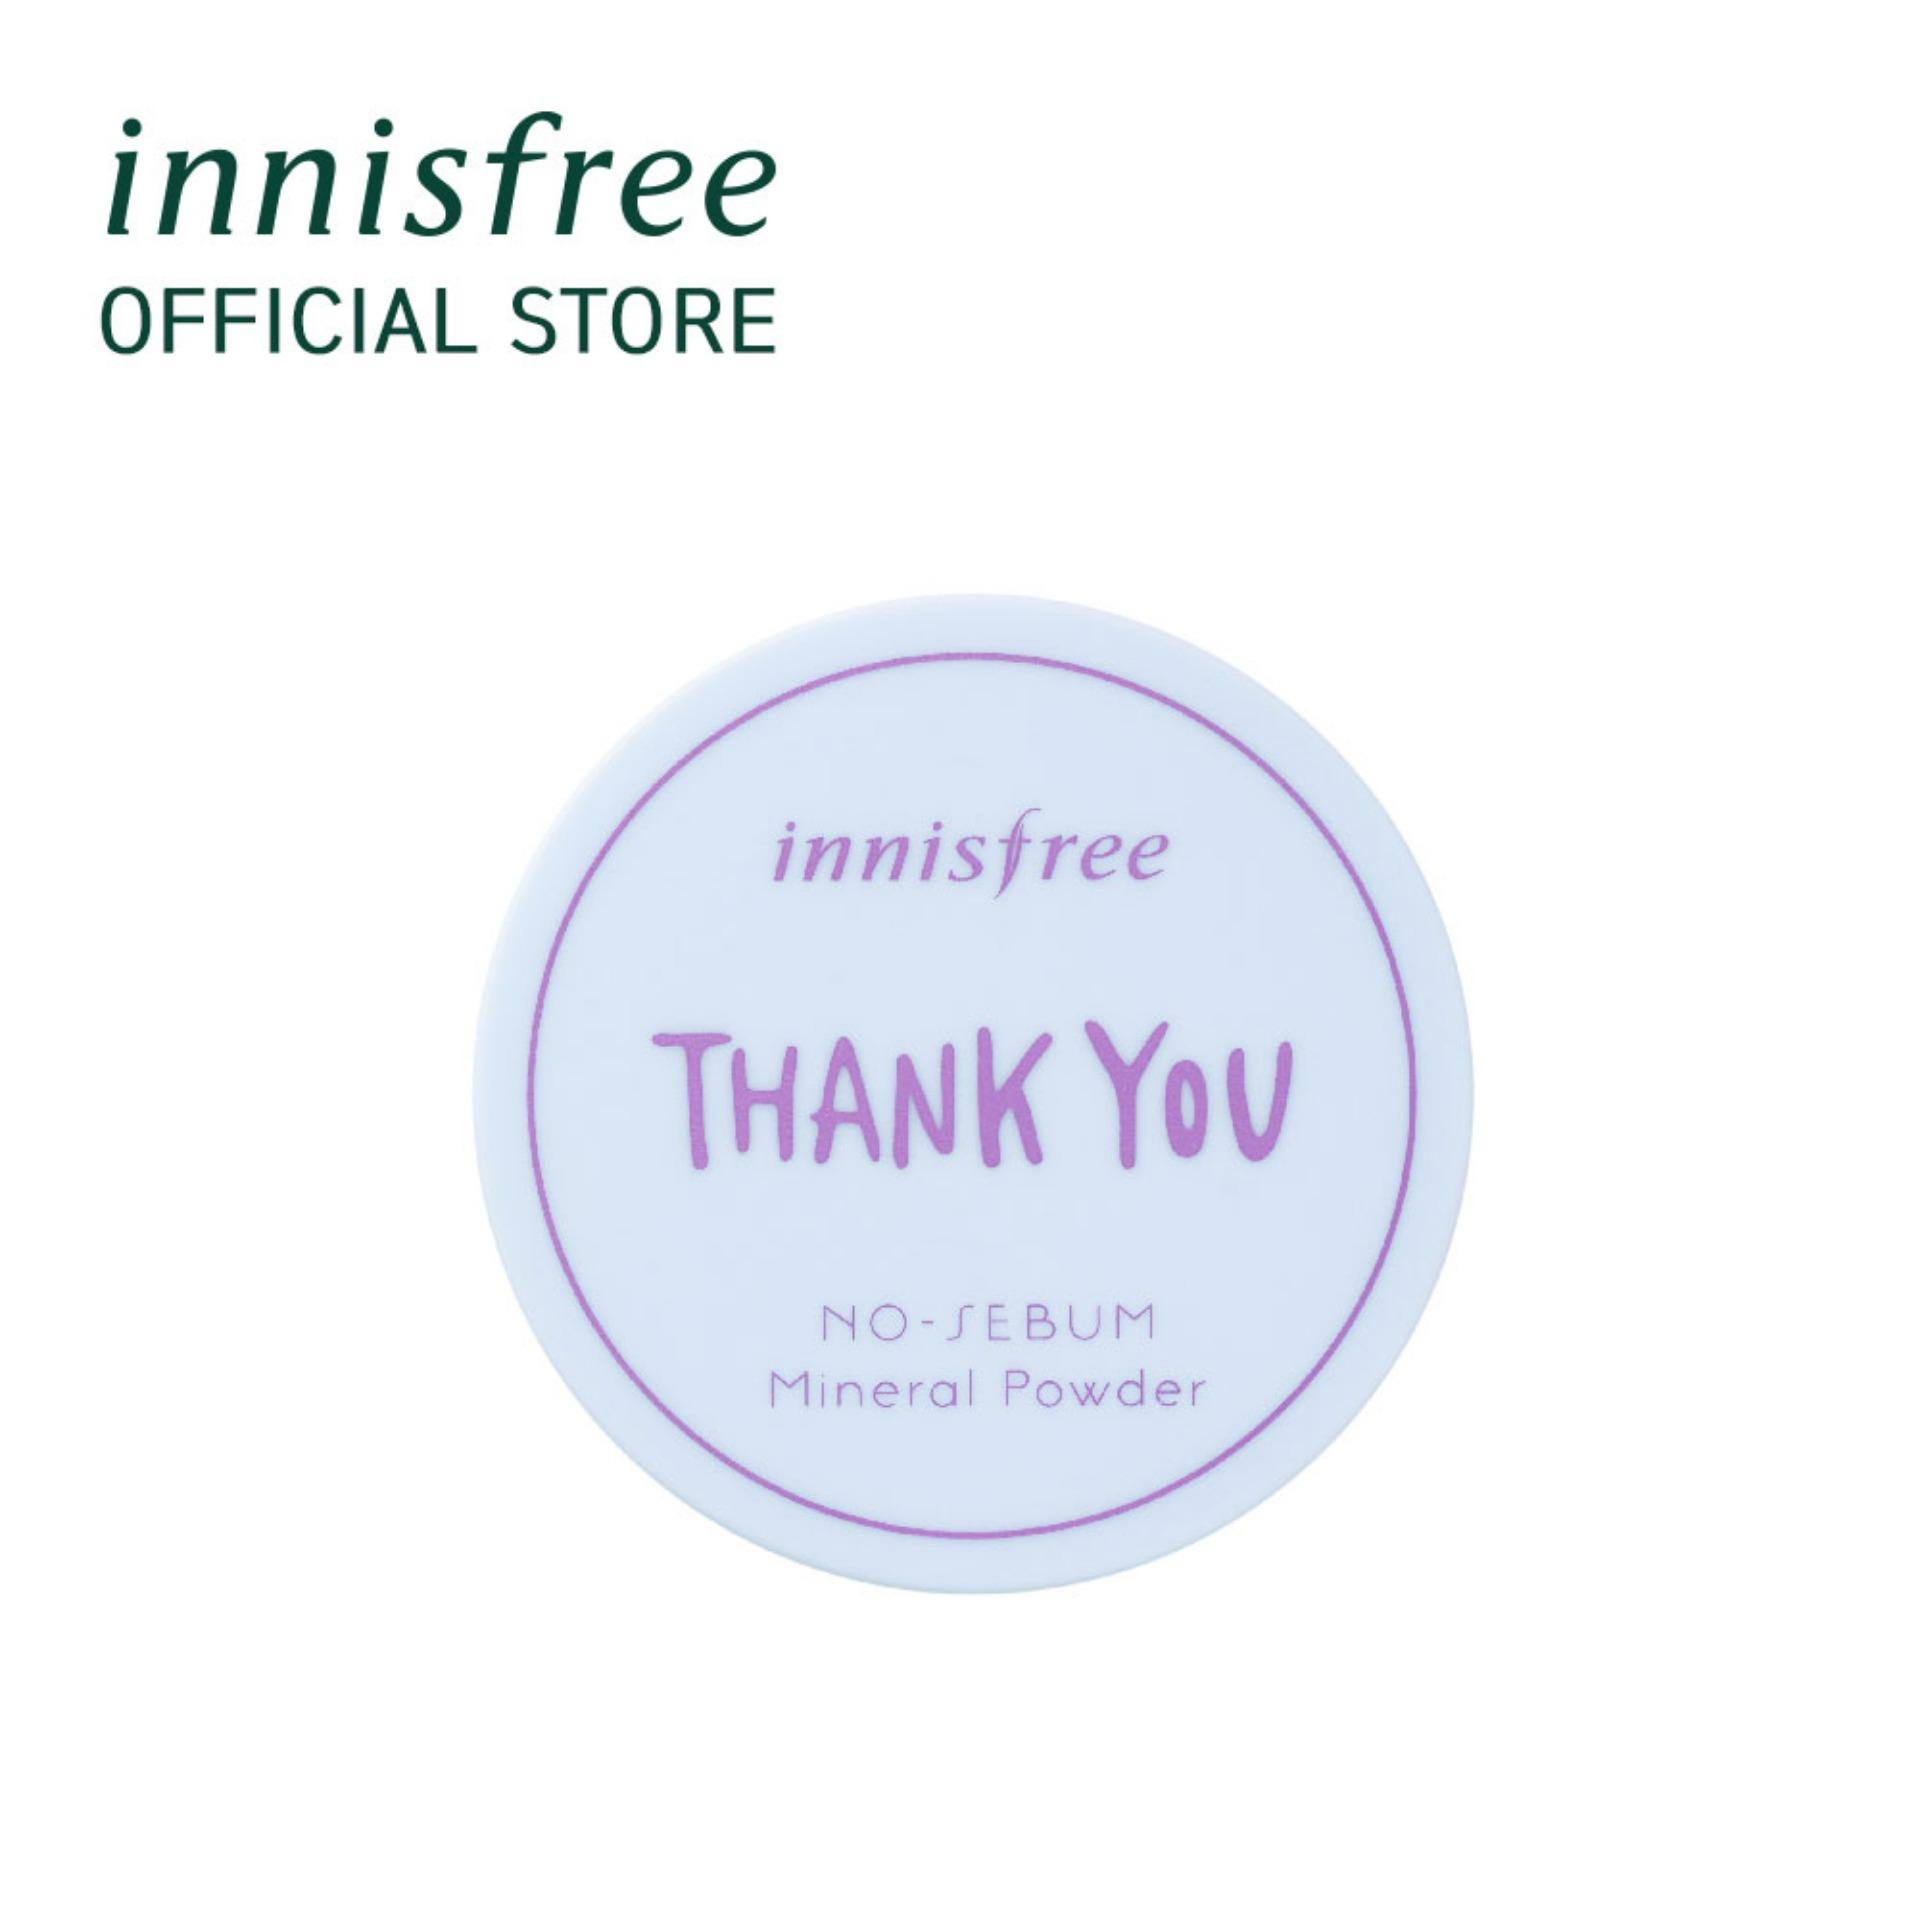 Innisfree No Sebum Mineral Powder 5g By Innisfree.